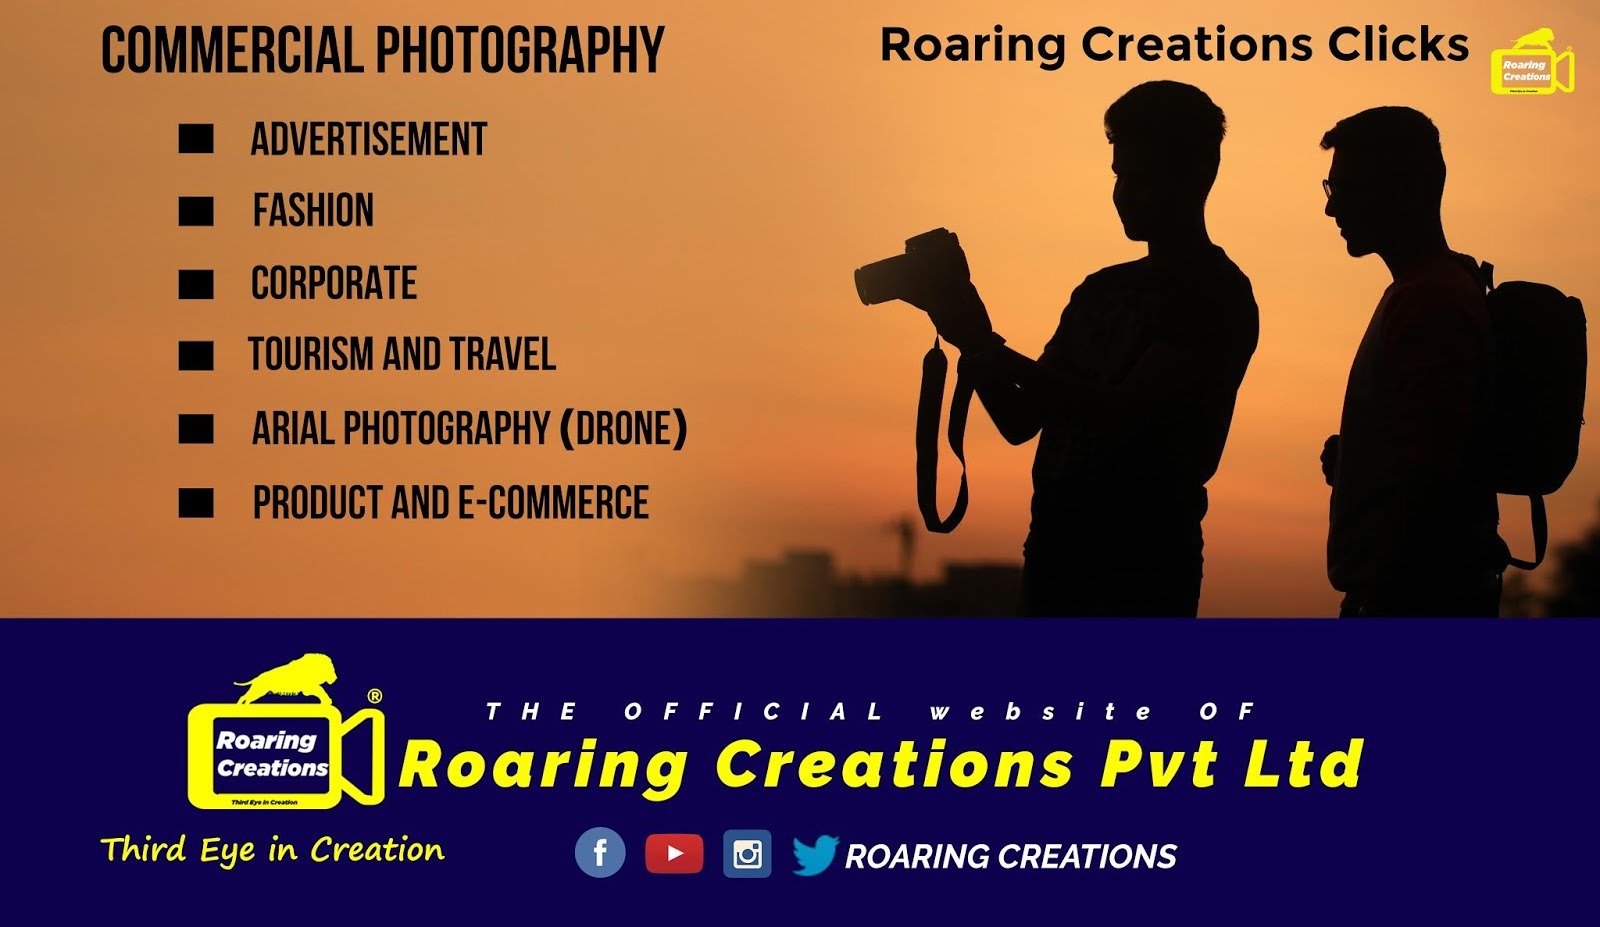 Commercial Photography @ Roaring Creations